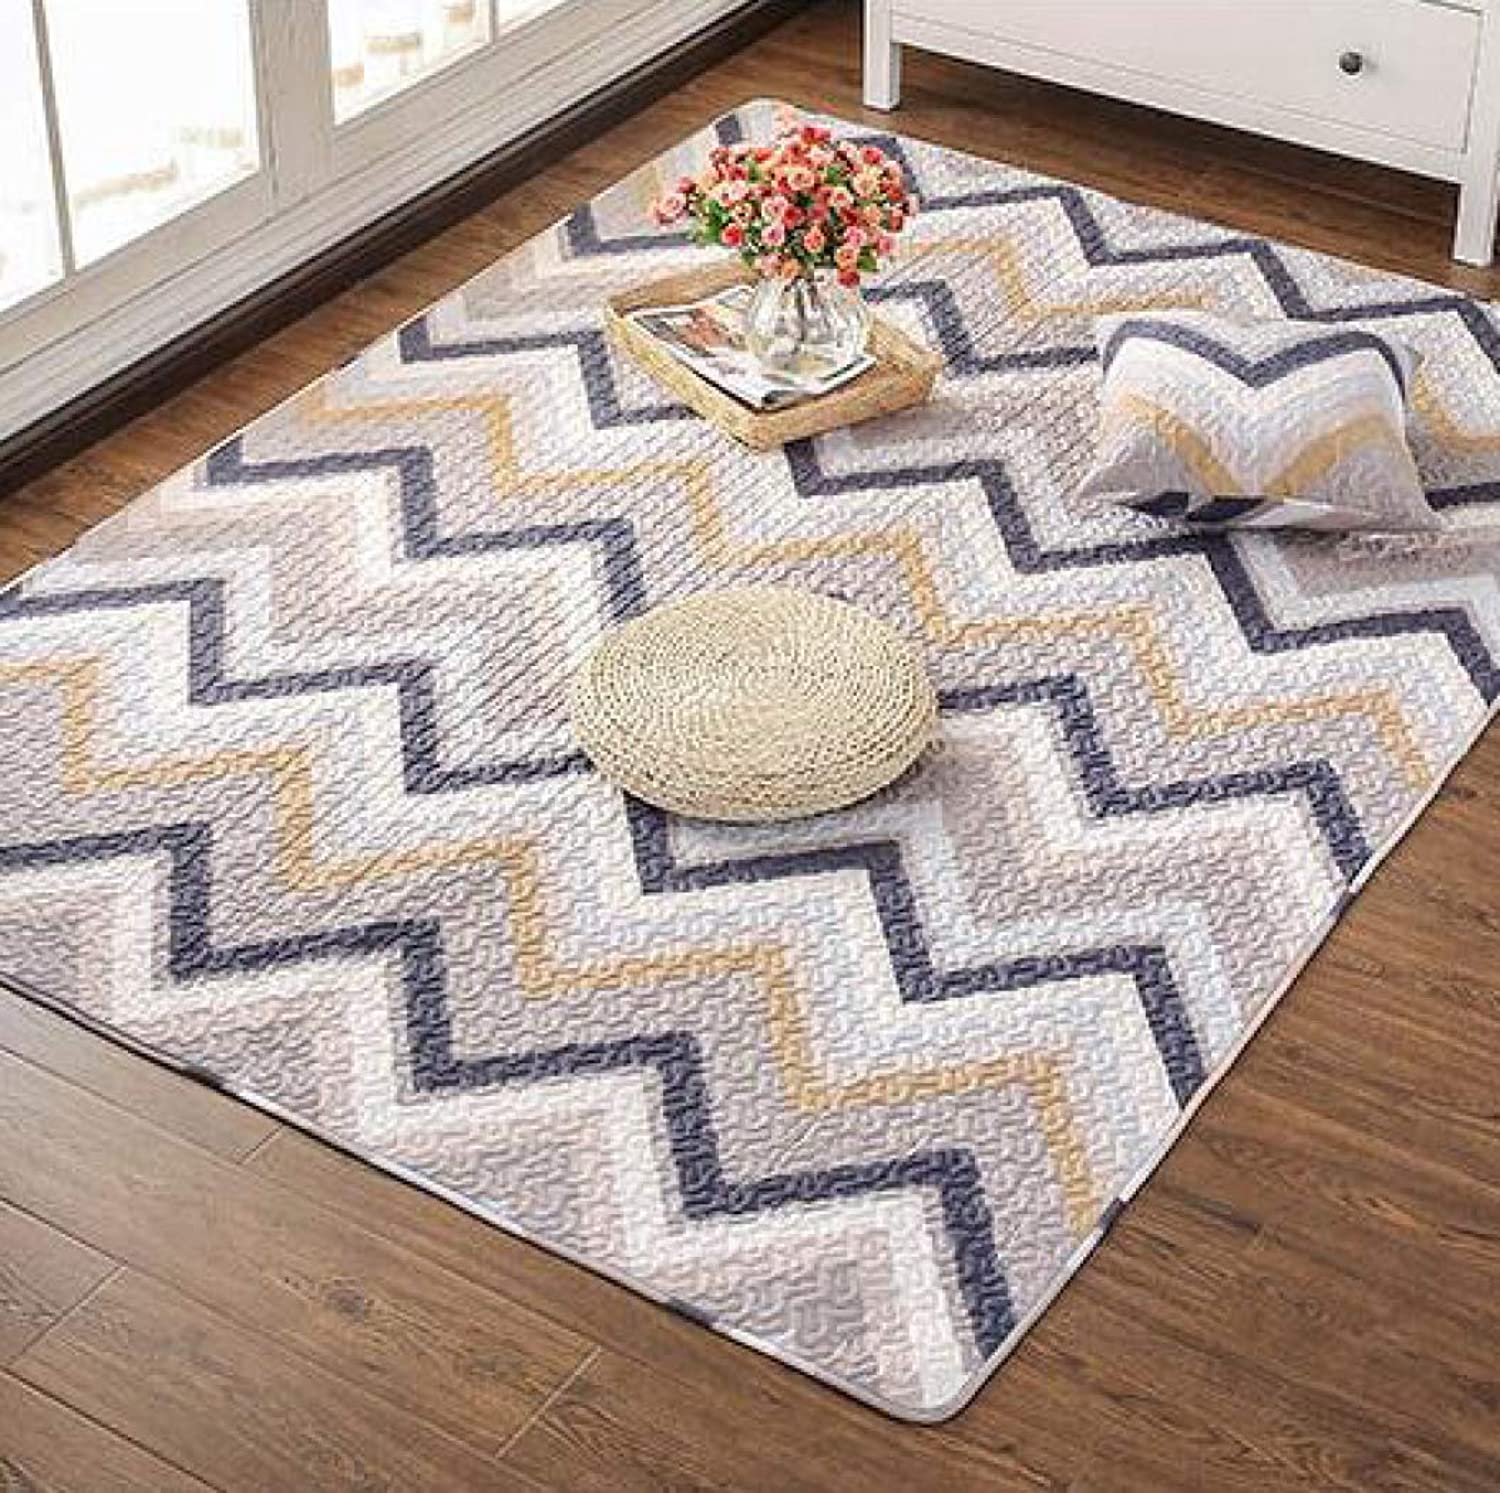 Modern Carpets Kids Bedroom Cartoon Carpets Soft Cotton Home Decor Textile Rugs Wear-Resistant and Durable Rug